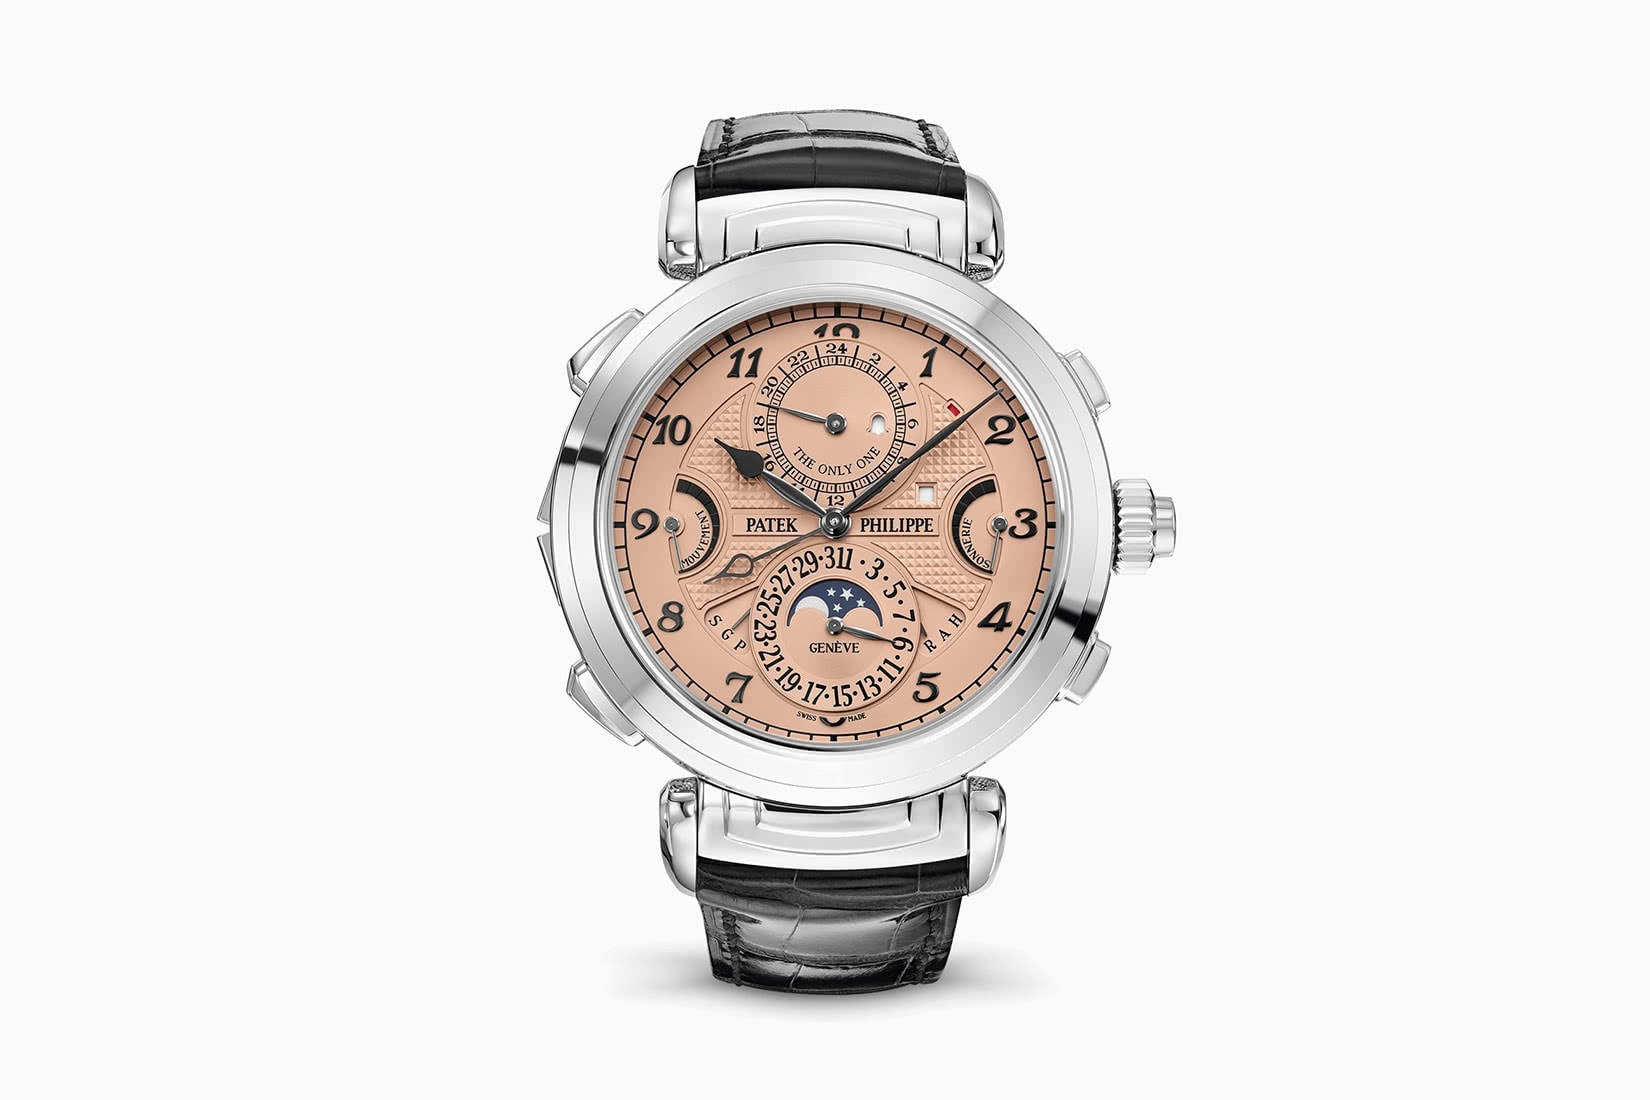 most expensive watches patek philippe grandmaster chime ref 6300A 010 - Luxe Digital